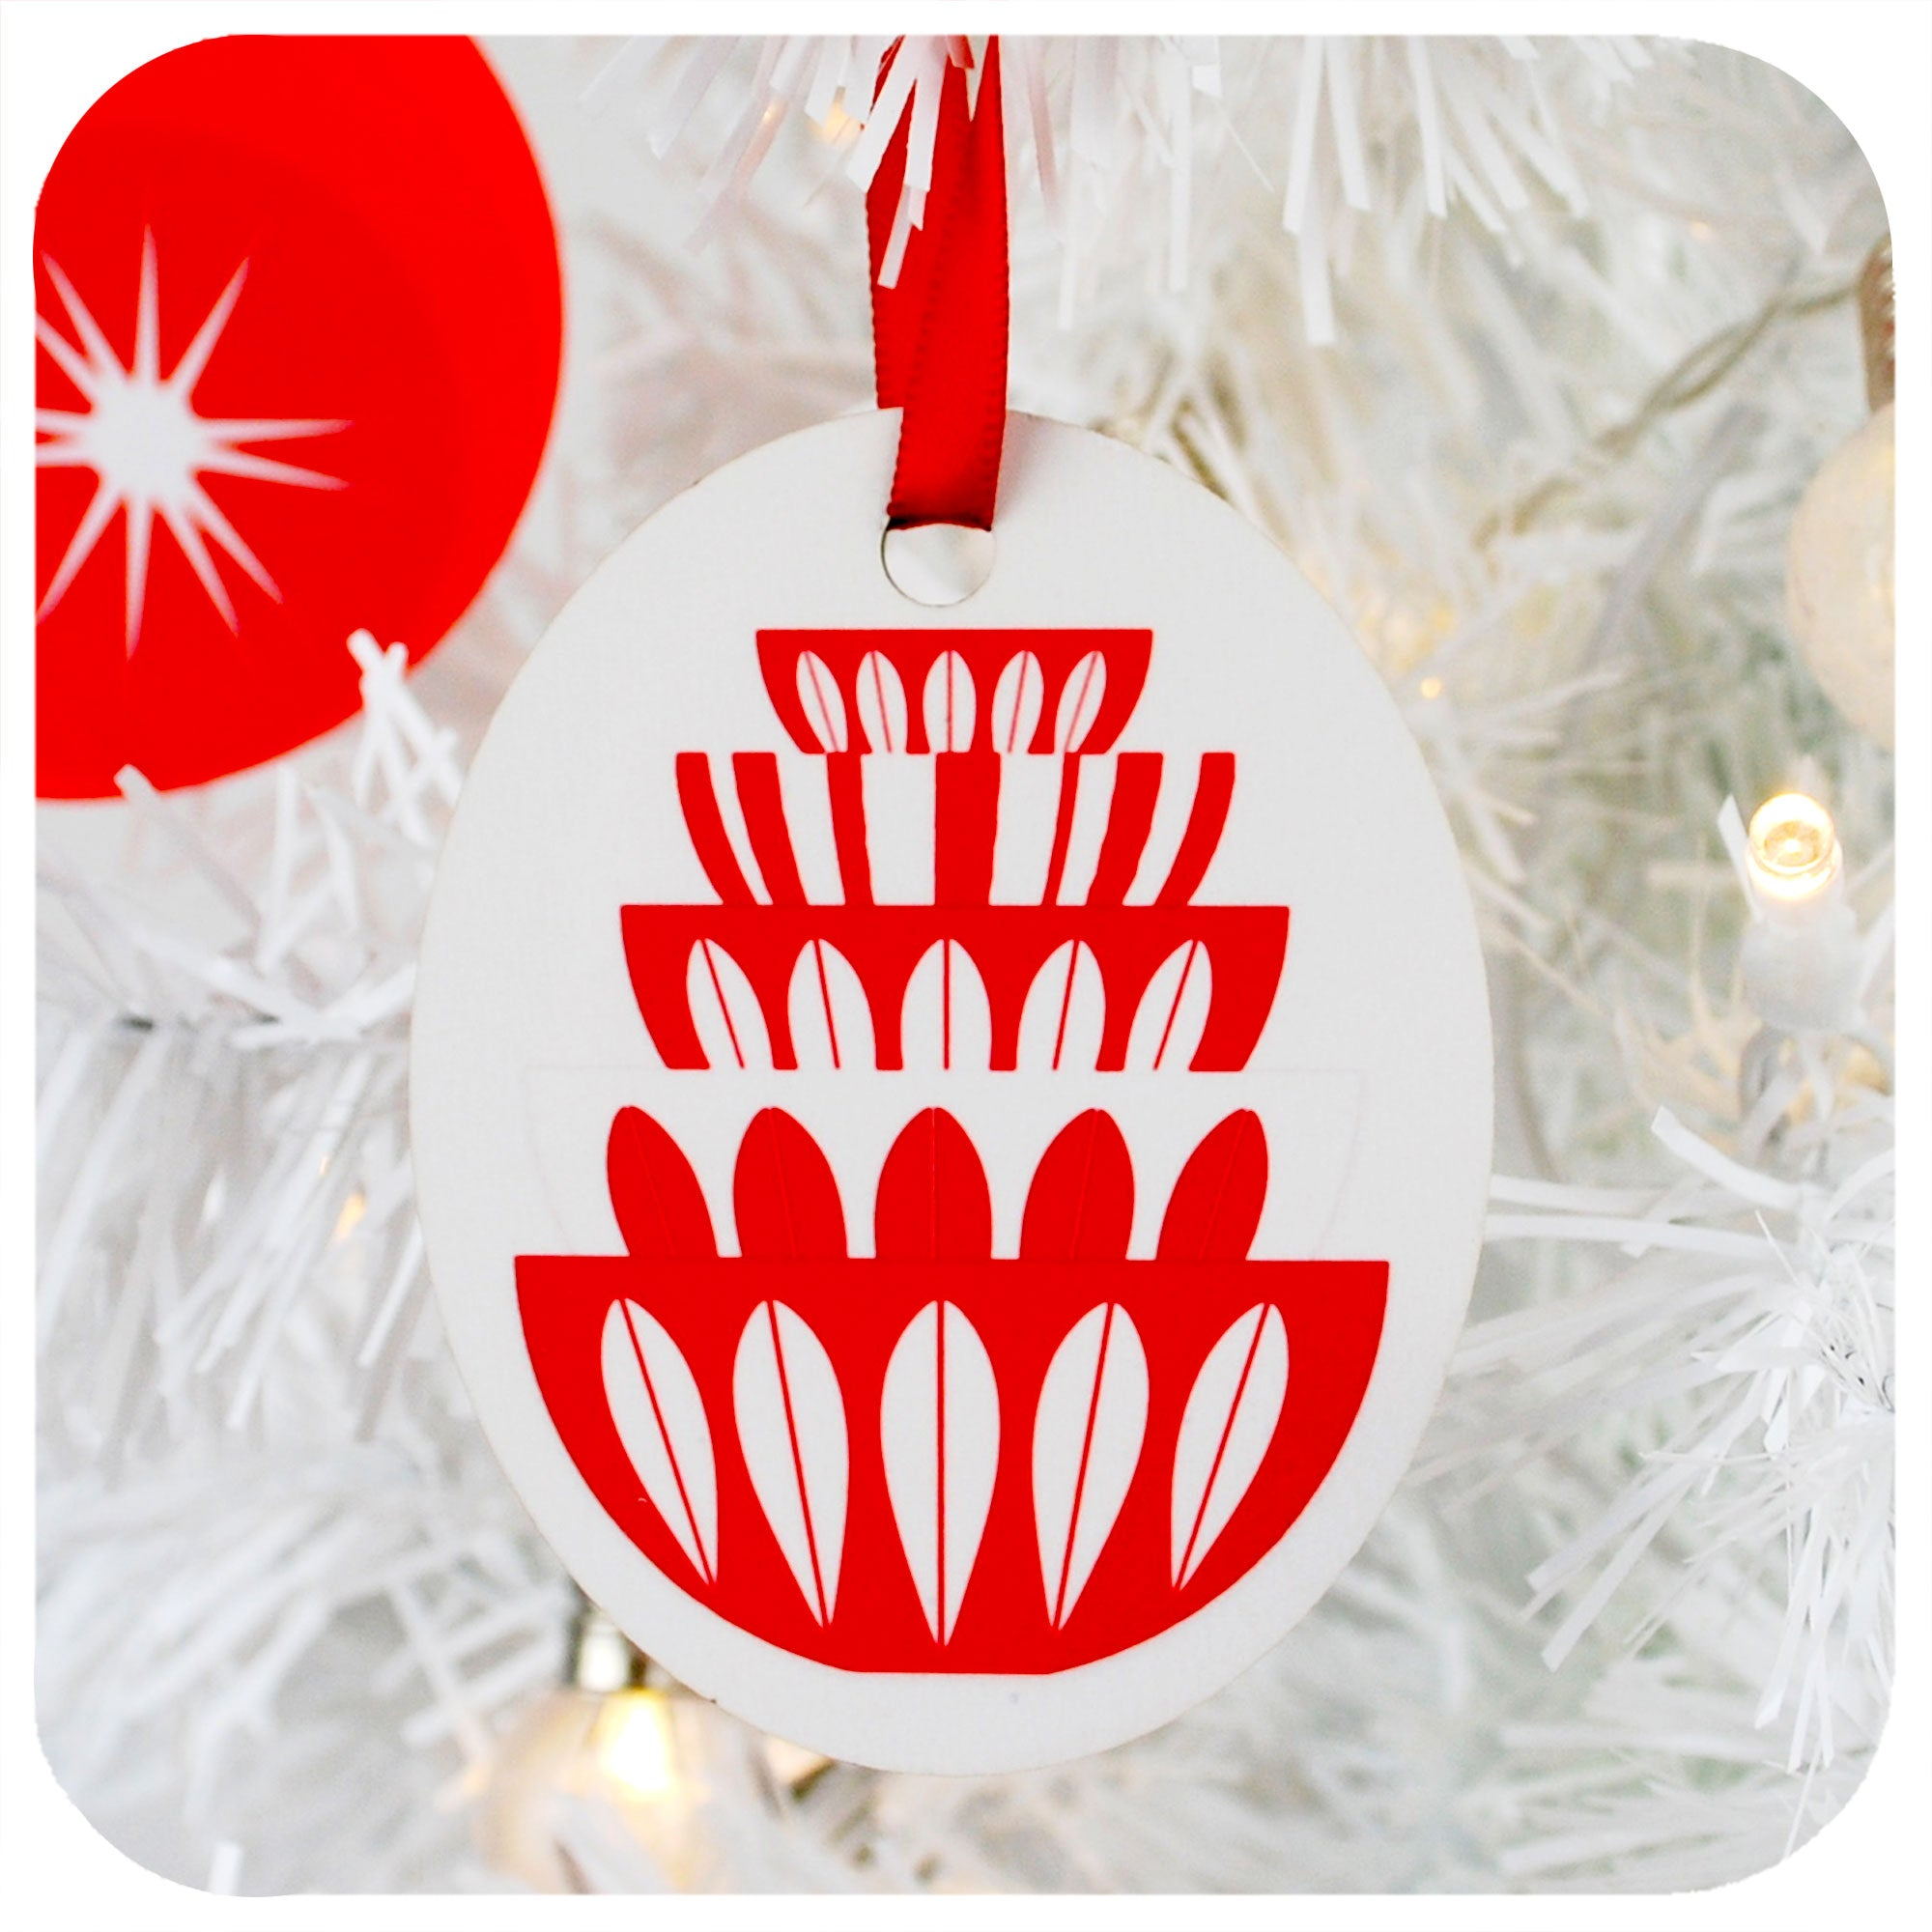 Christmas Tree Decoration featuring graphic of Catherineholm Bowl Stack in white & red, hanging by red ribbon on a white Christmas tree | The Inkabilly Emporium